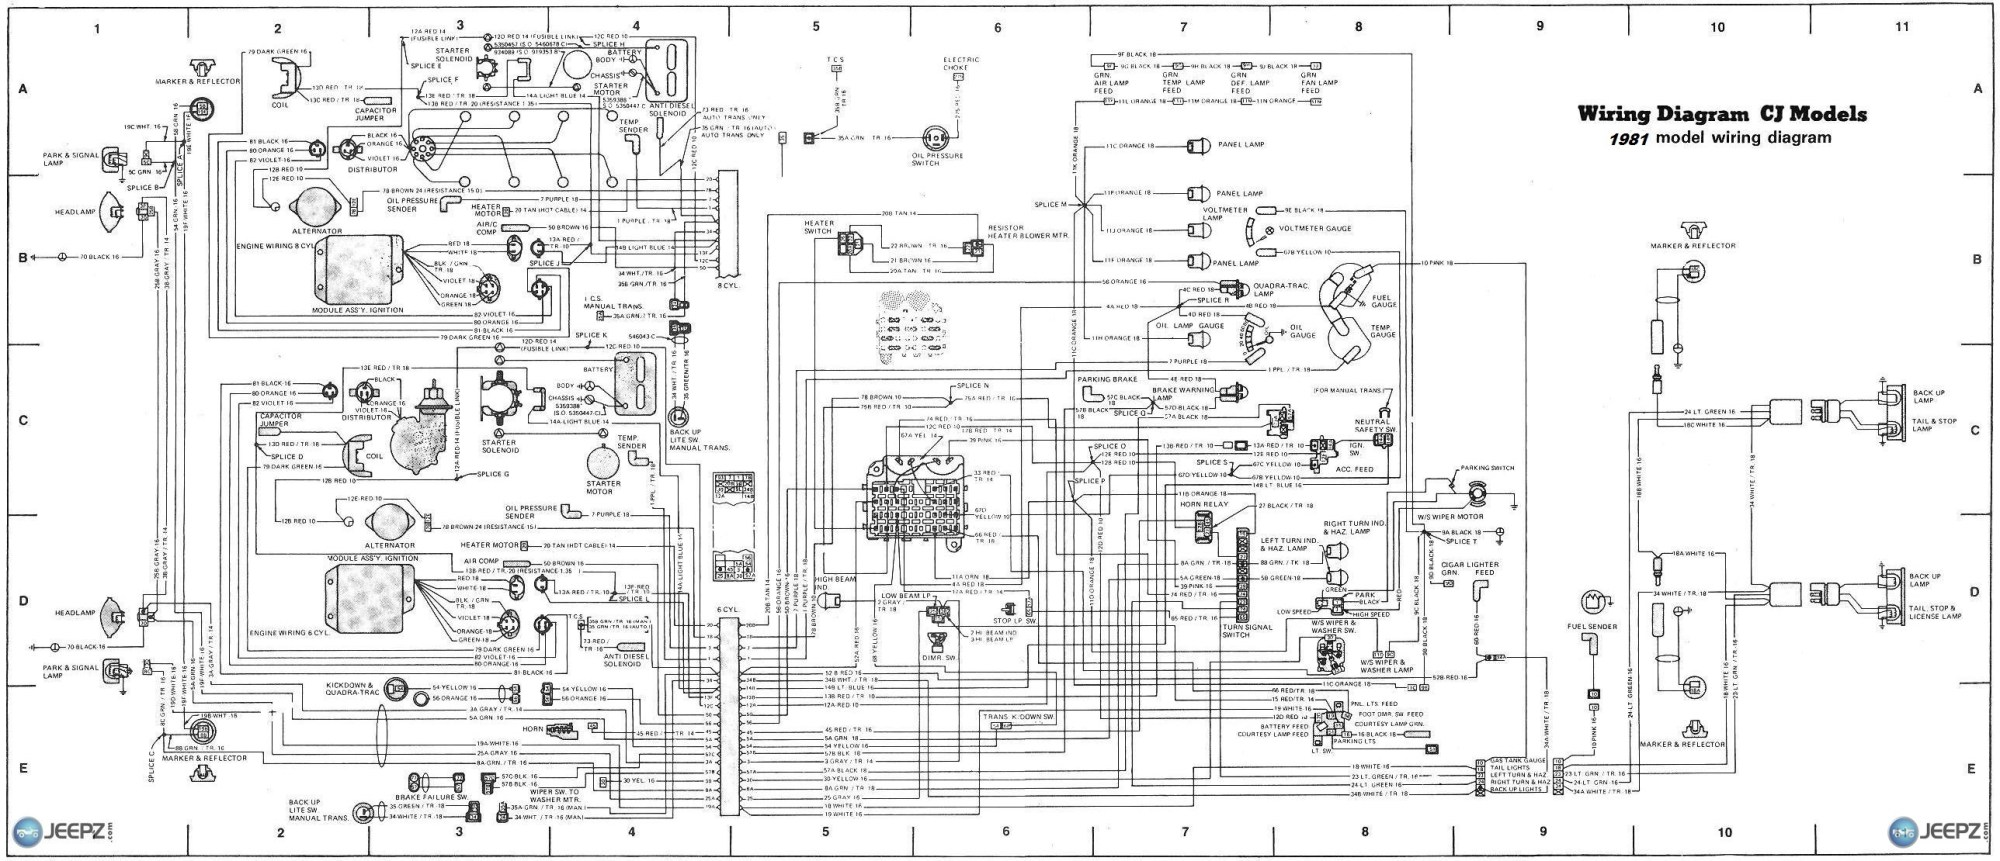 hight resolution of 1981 buick fuse box schematic wiring diagram forward 2005 buick lesabre wiring diagram 1981 buick